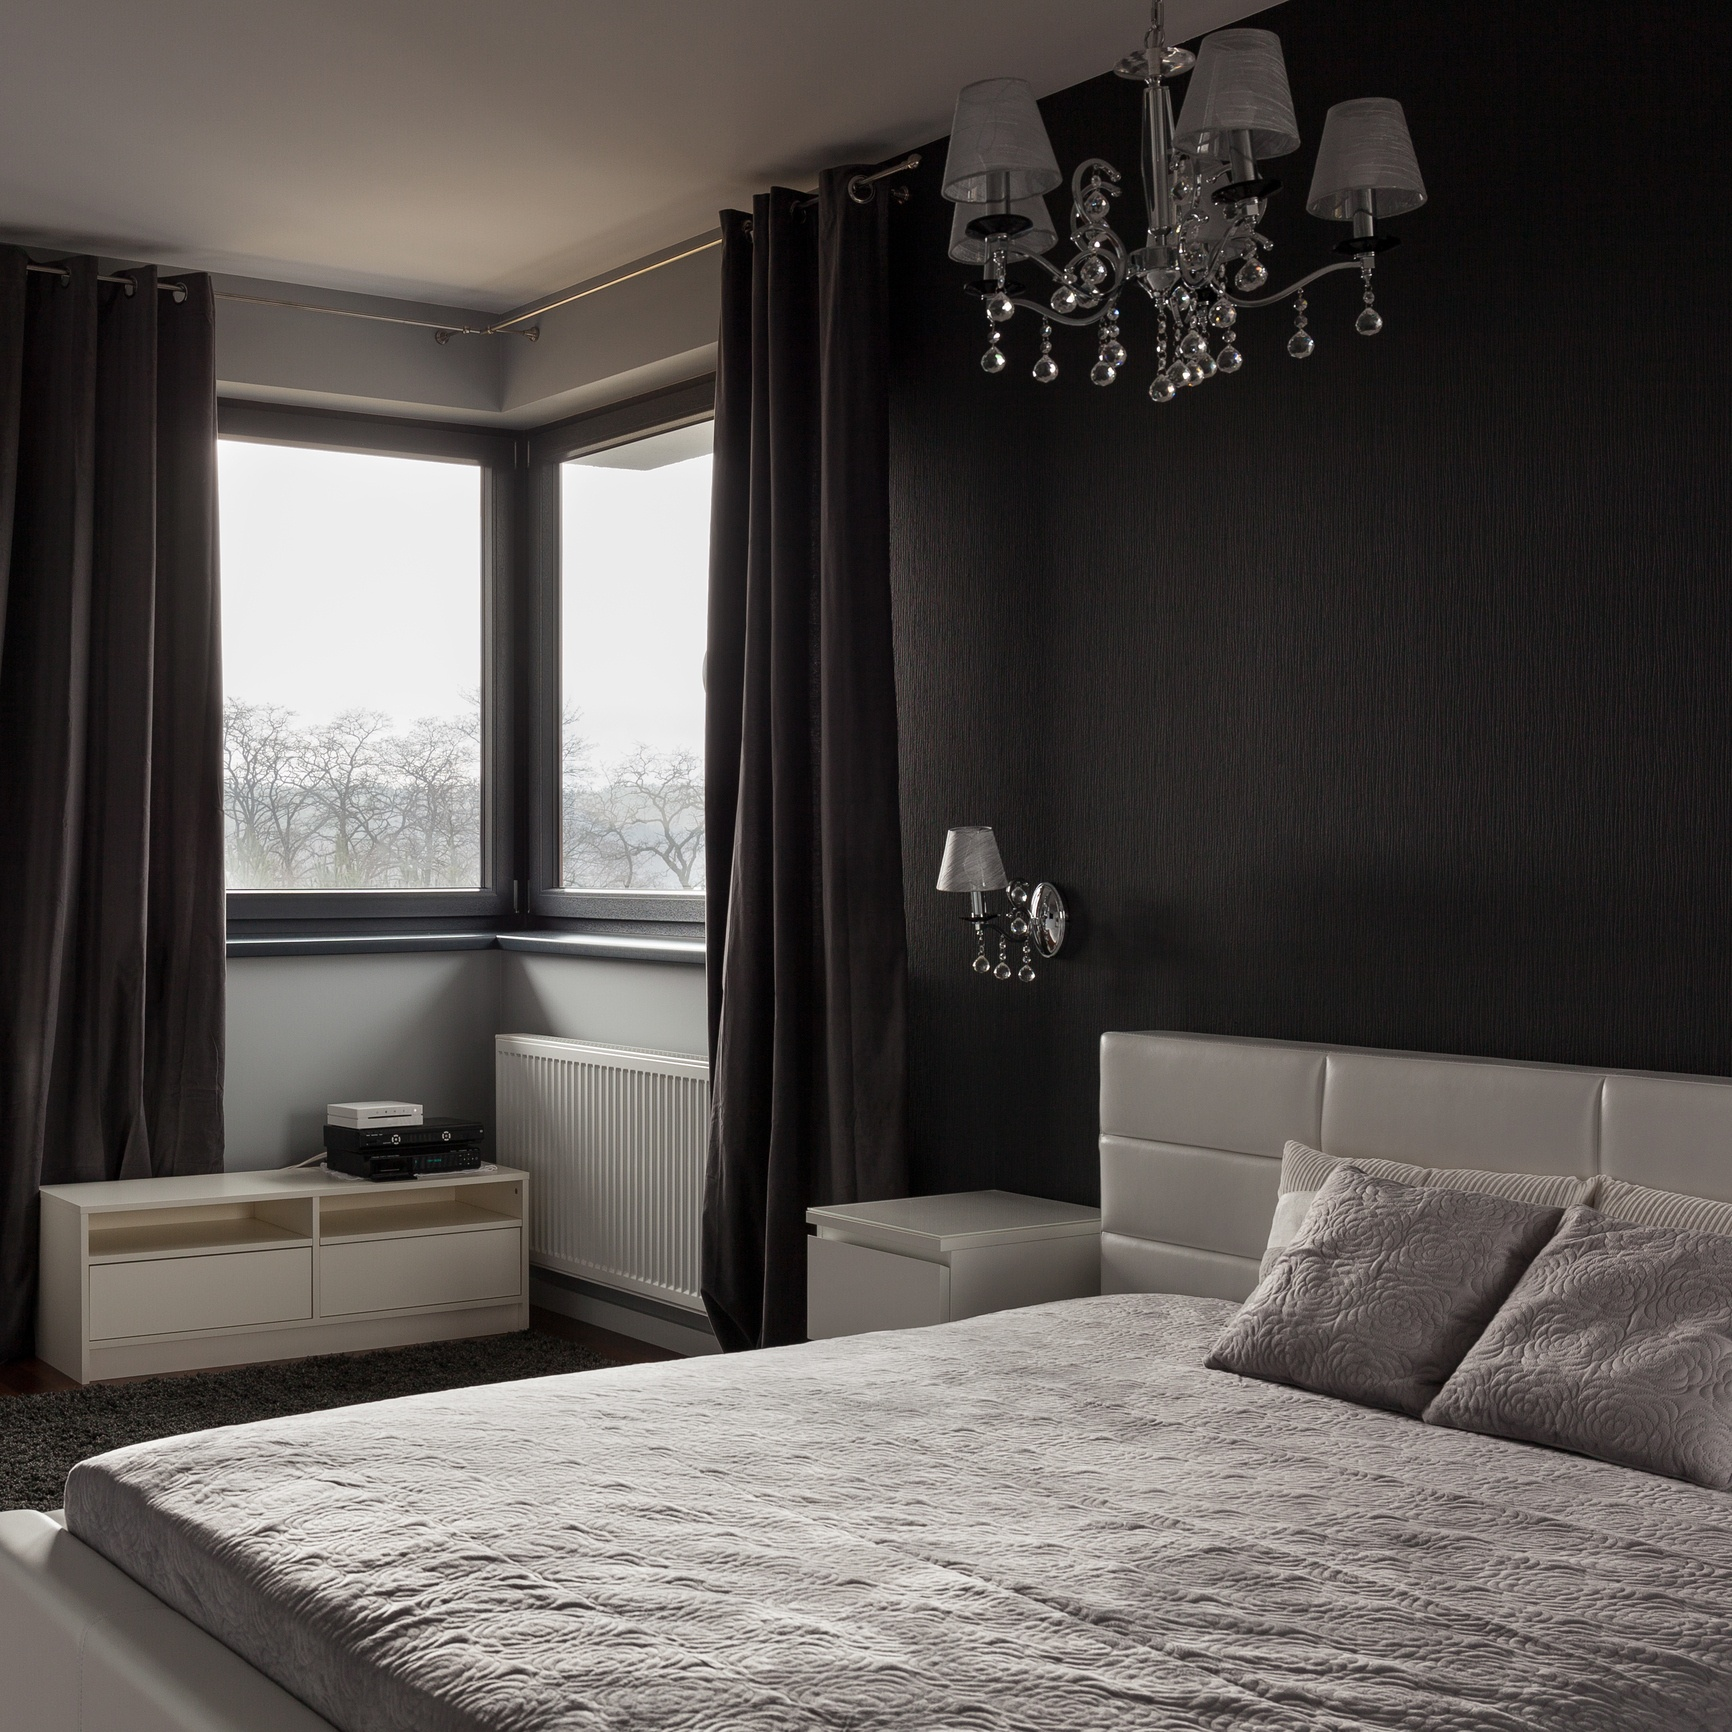 Dark bedroom with black accent wall